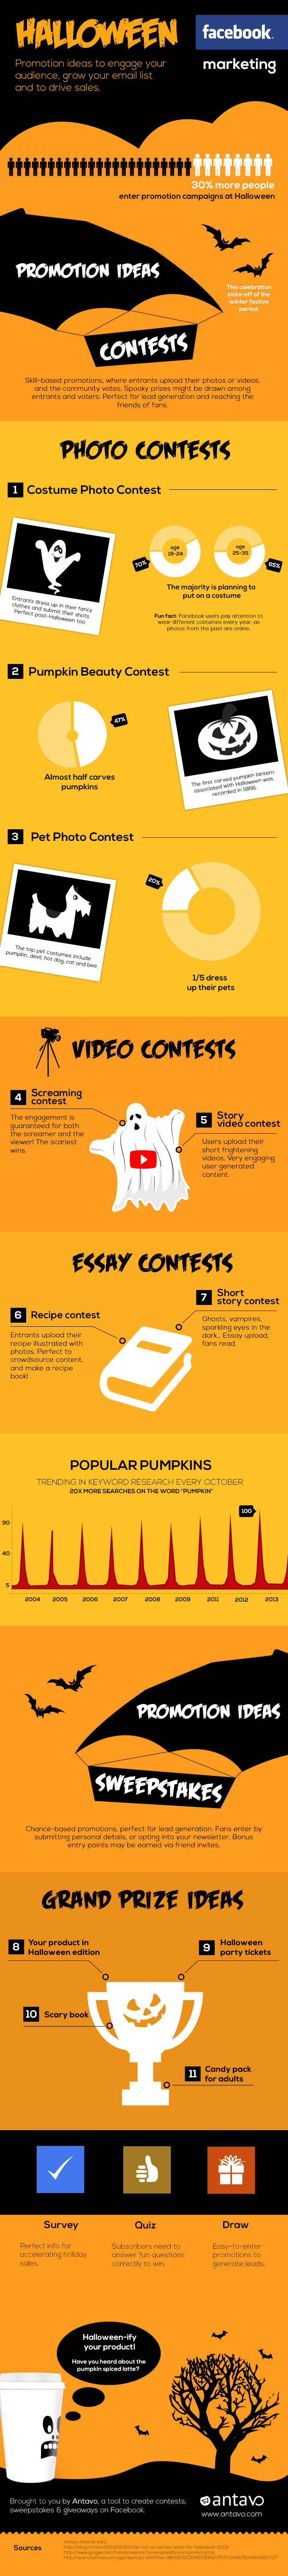 Halloween Facebook Contest Ideas